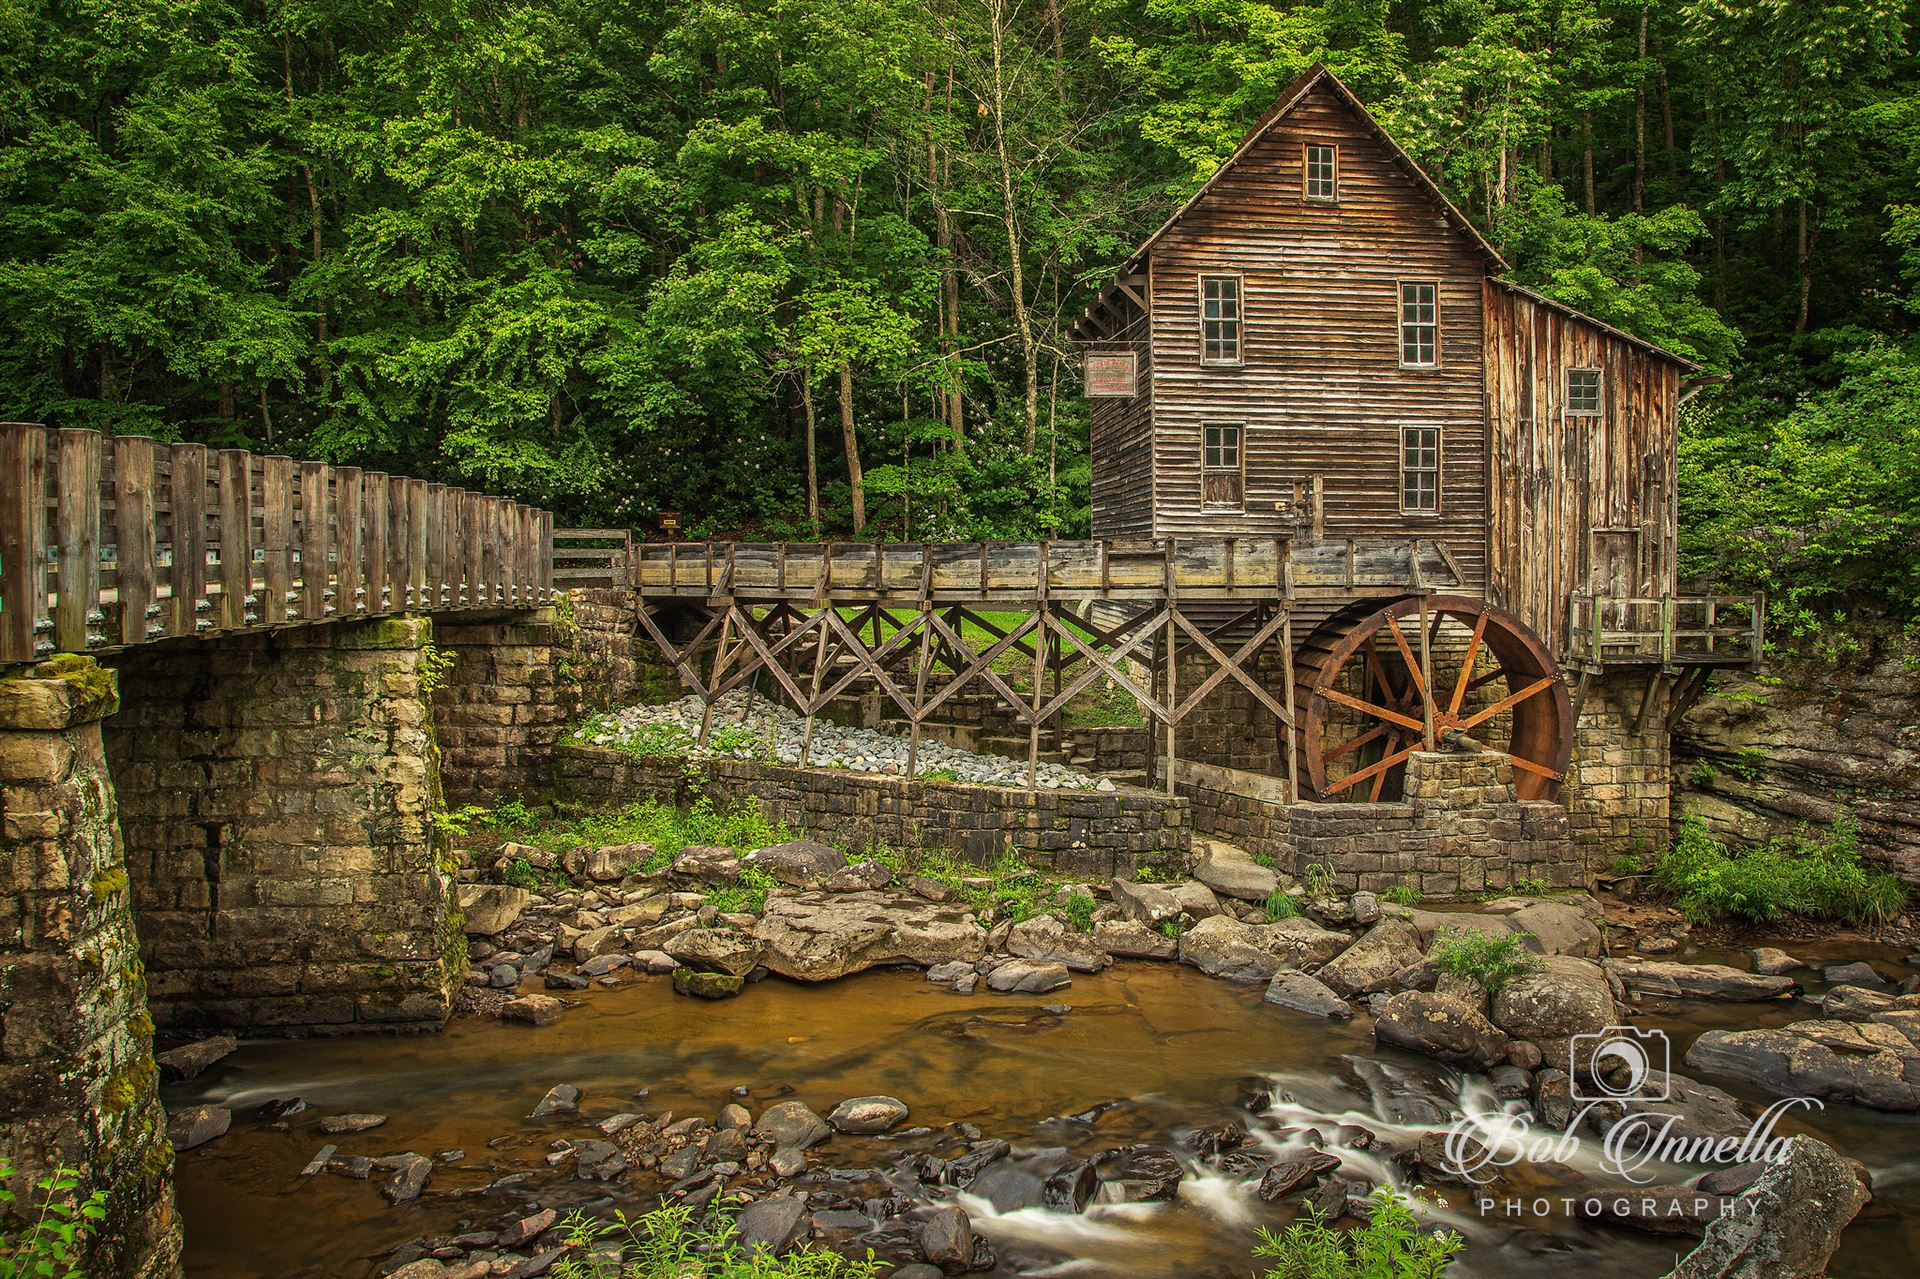 Glade Creek Grist Mill - Grist Mill in Babcock State Park, West Virginia by Buckmaster